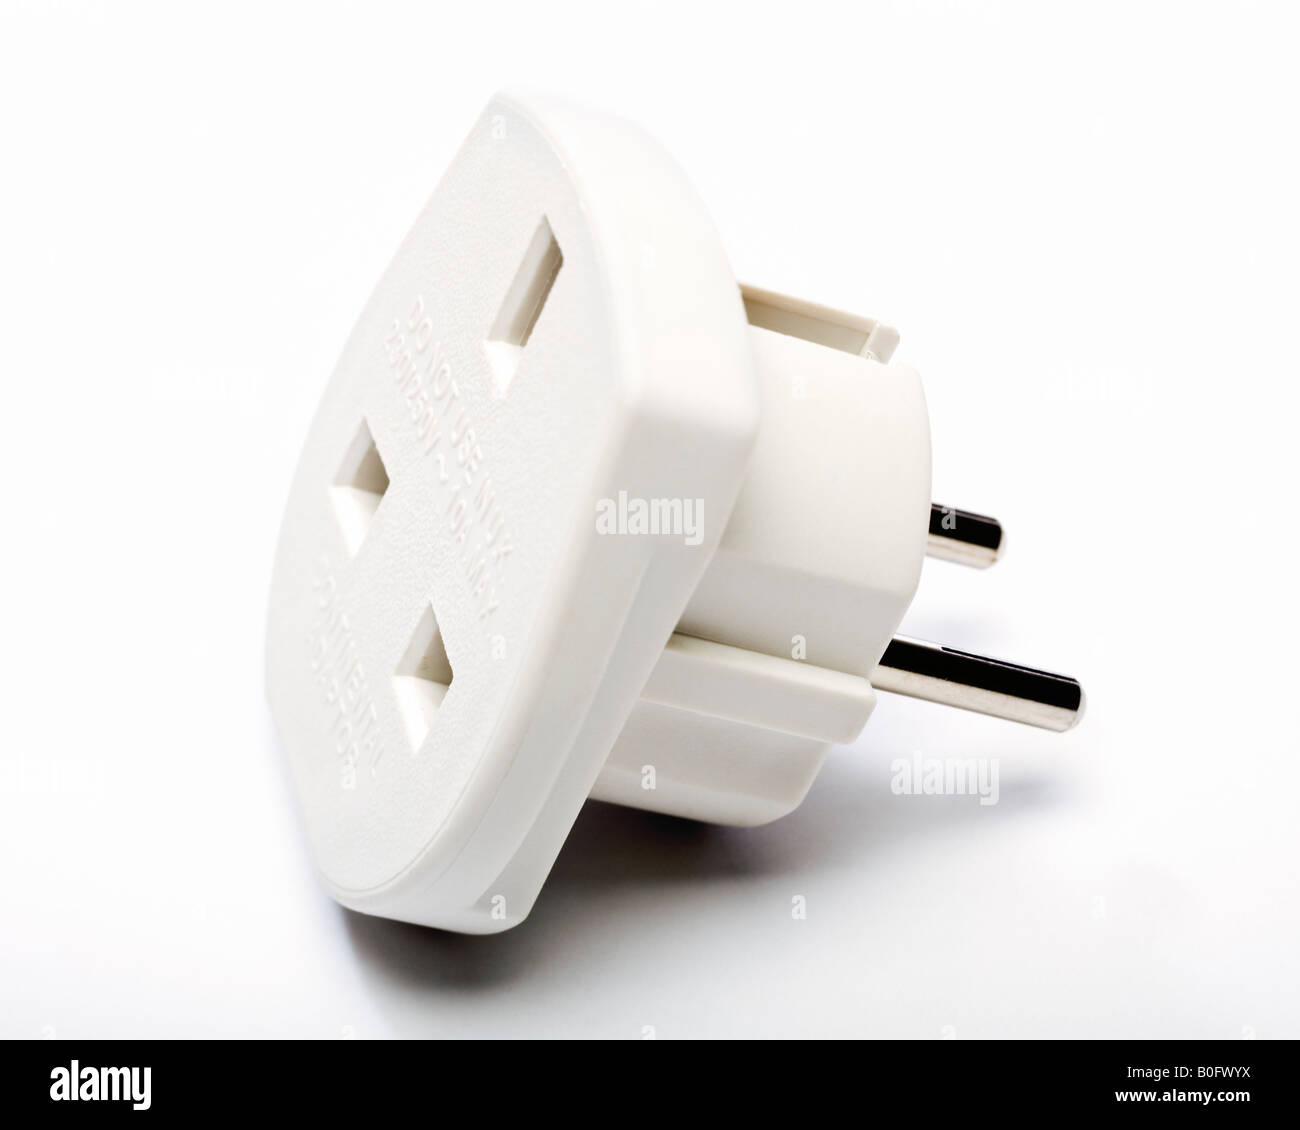 European plug adapter - UK 3 pin plug to European 2 pin plug travel adapter - Stock Image